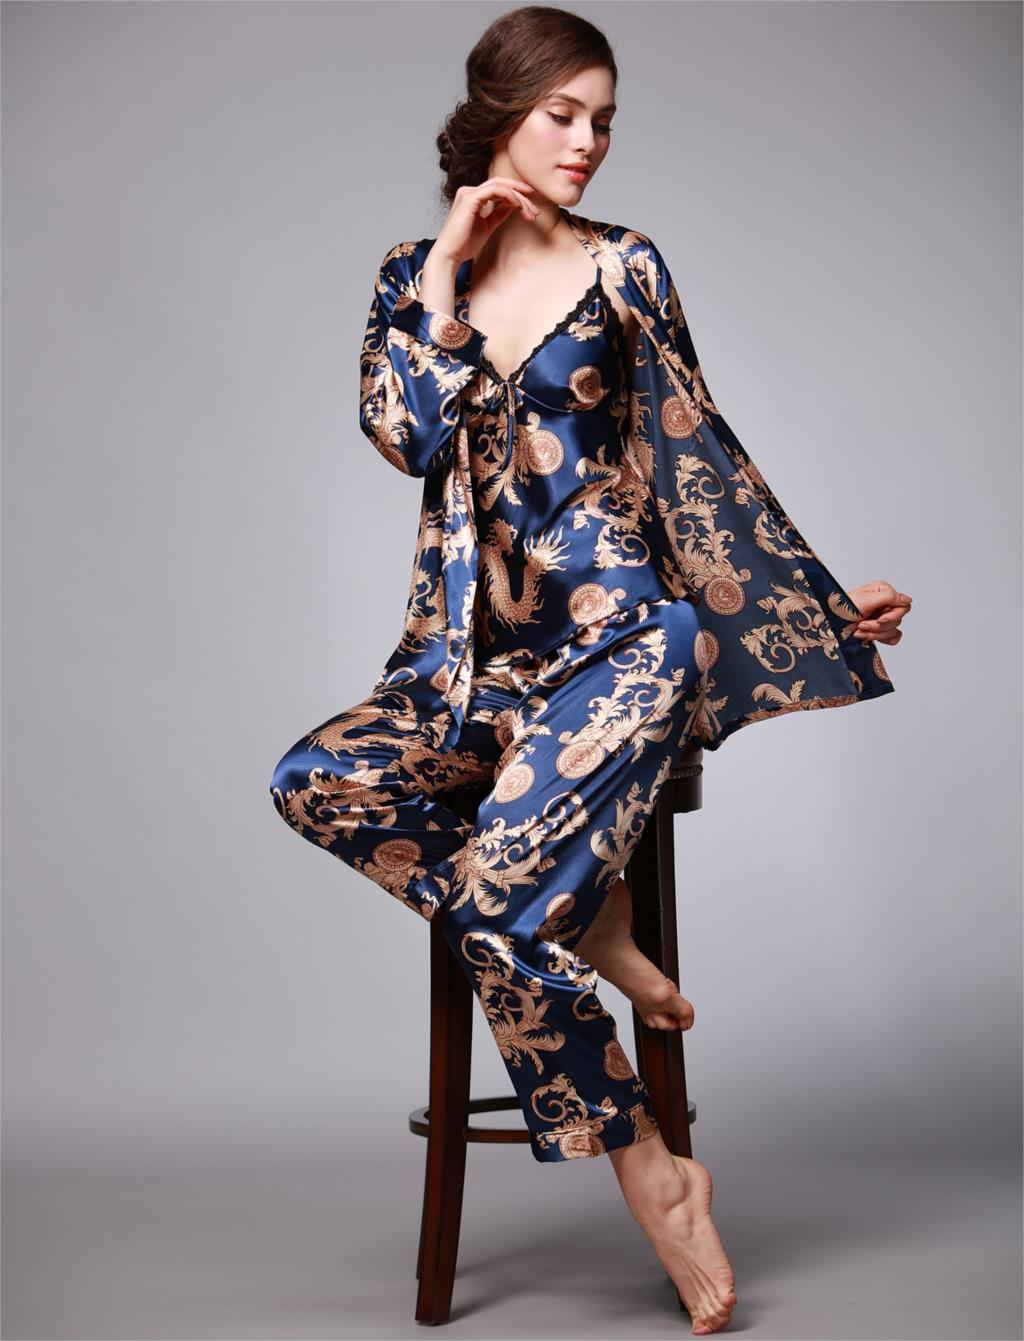 2020 Women Silk Pajamas Female 3 Pieces Satin Pajamas Sets Autumn Spring Sleepwear Summer Long Sleeve Homewear Printed Nightwear Women Women's Clothings cb5feb1b7314637725a2e7: PJ01 Black|PJ01 Blue|PJ01 Grey|PJ01 Red|PJ01 Silver|PJ02 Blue|PJ02 Red|PJ02 Silver|PJ04 Black|PJ04 Blue|PJ04 Red|PJ04 Sliver